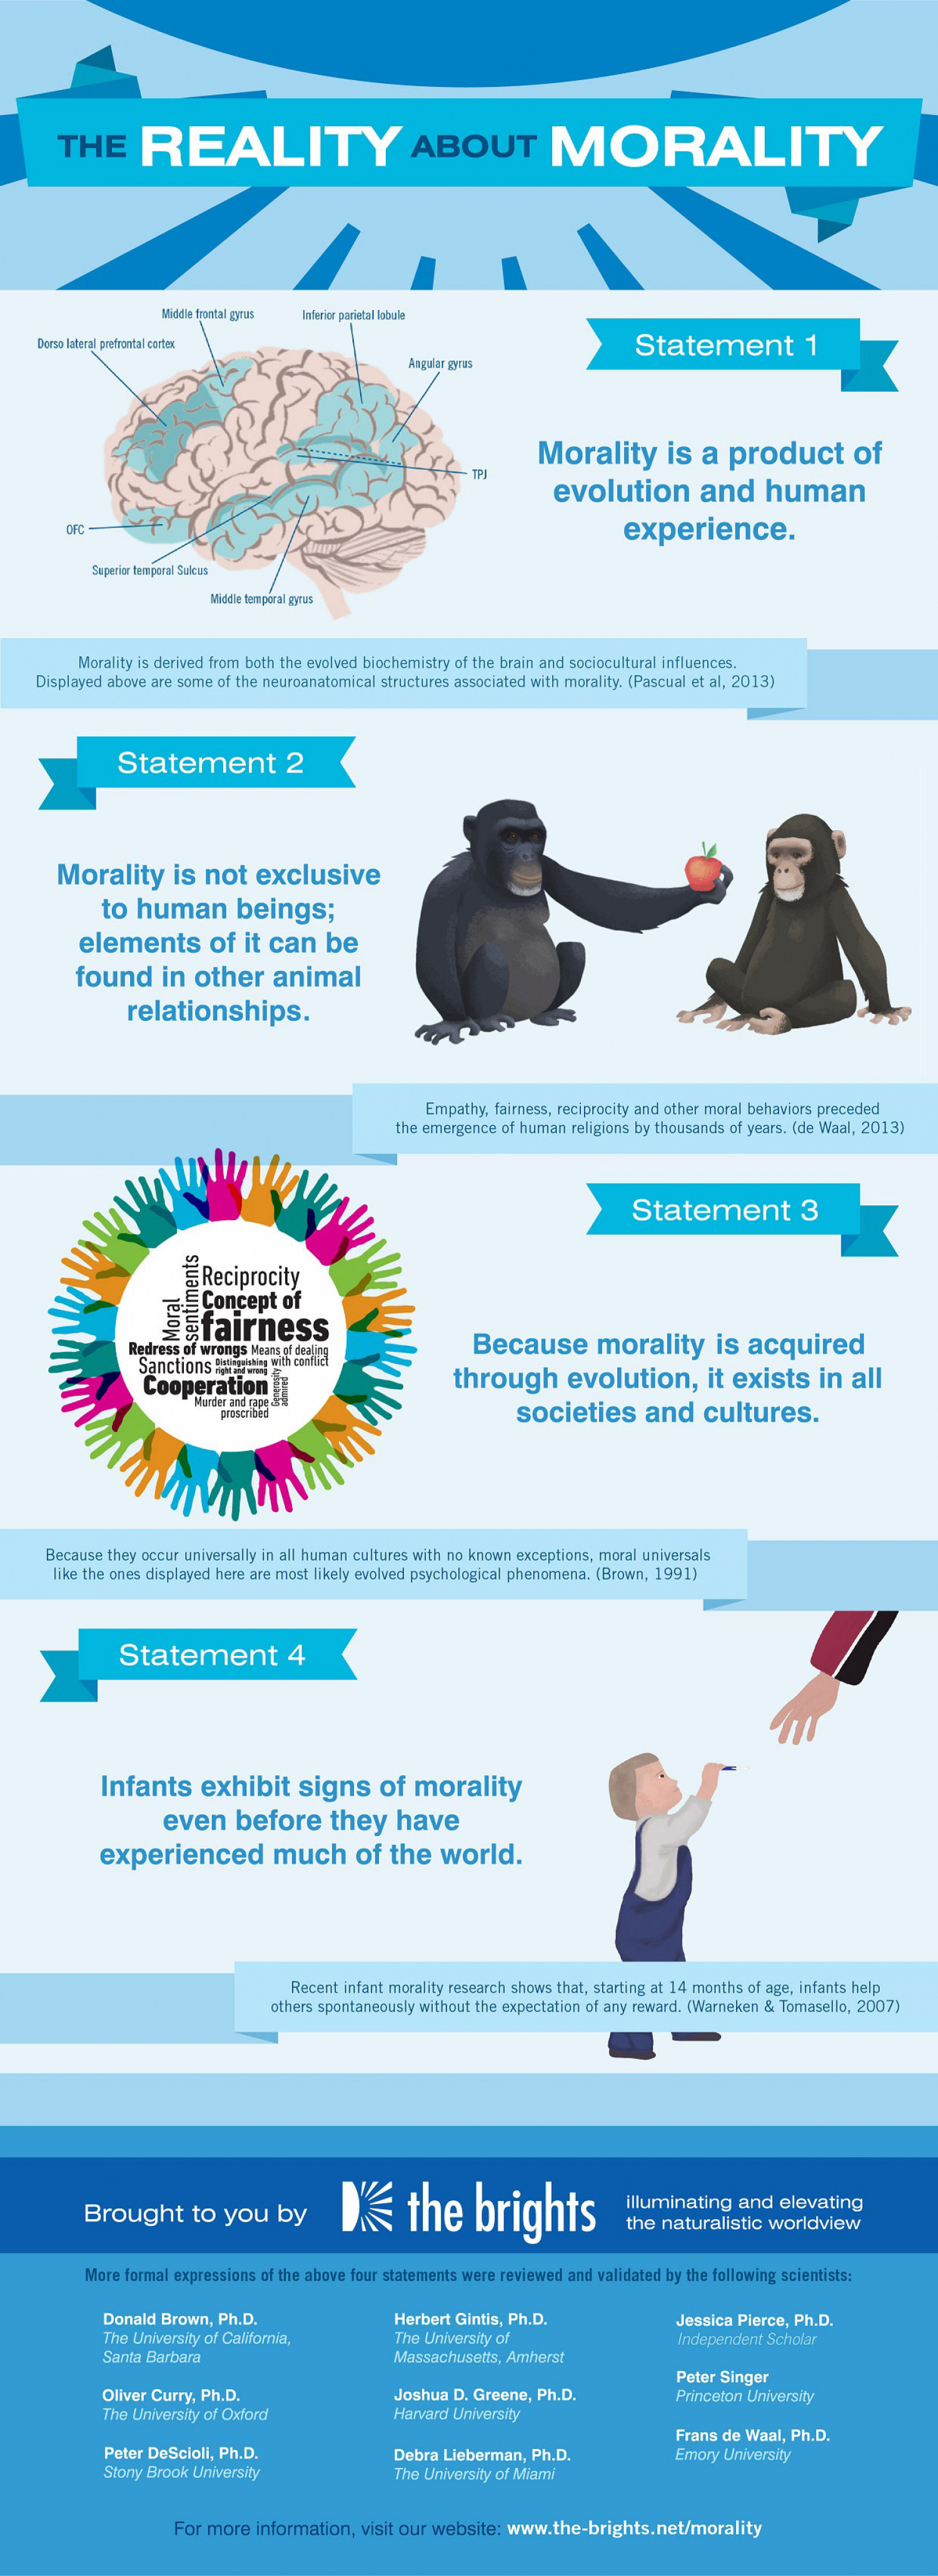 The Reality About Morality Infographic